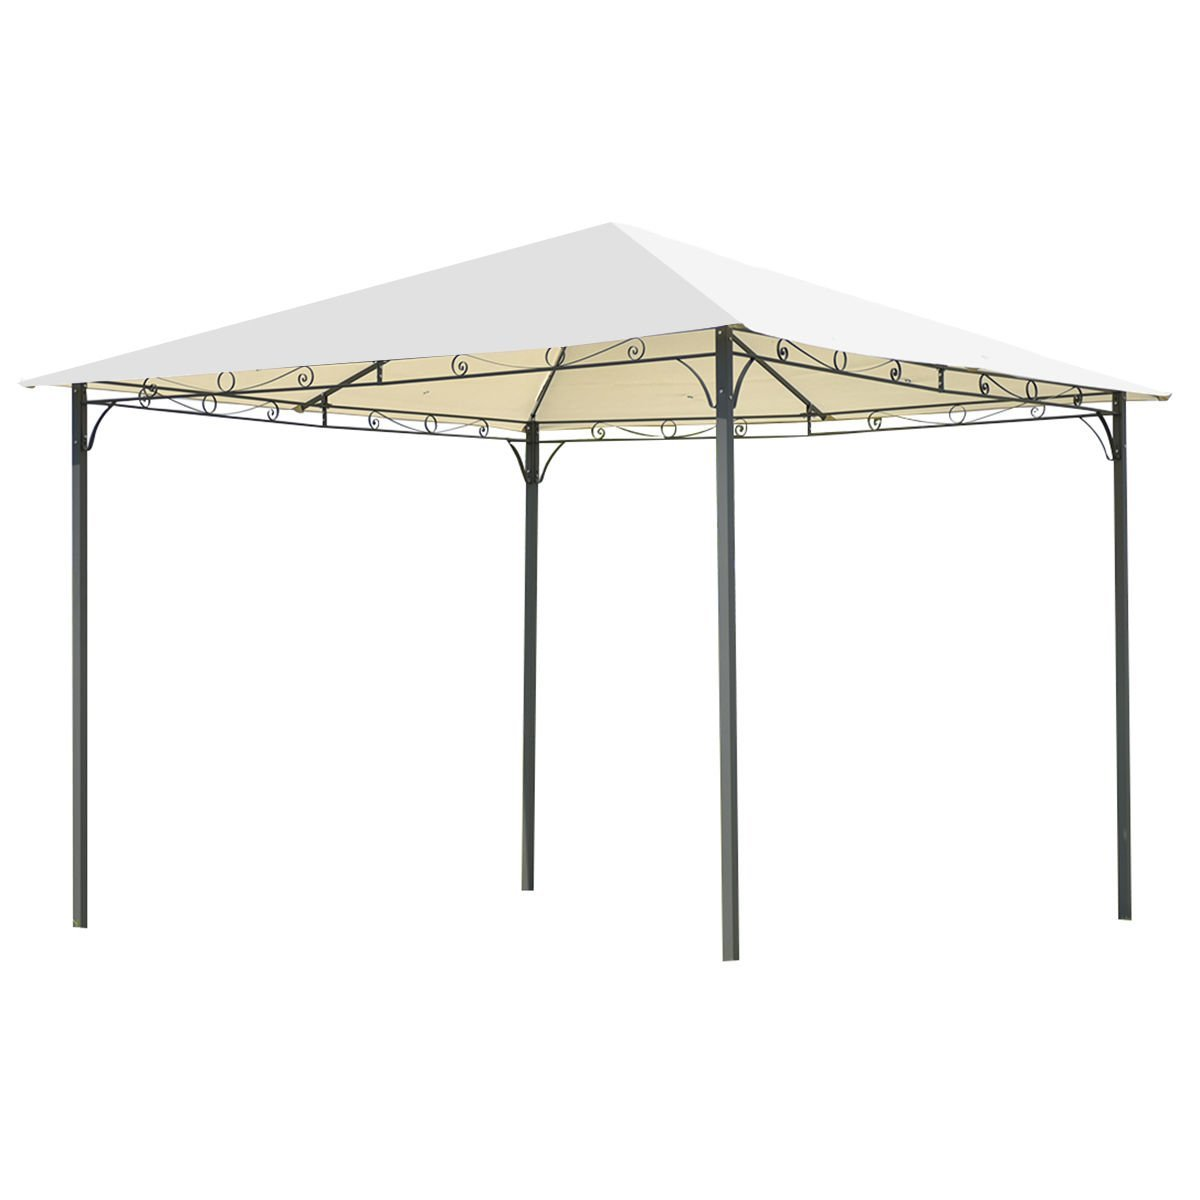 AK Energy Beige Outdoor 10'x10' Square Gazebo Canopy Tent Shelter Awning Garden Patio Open Space